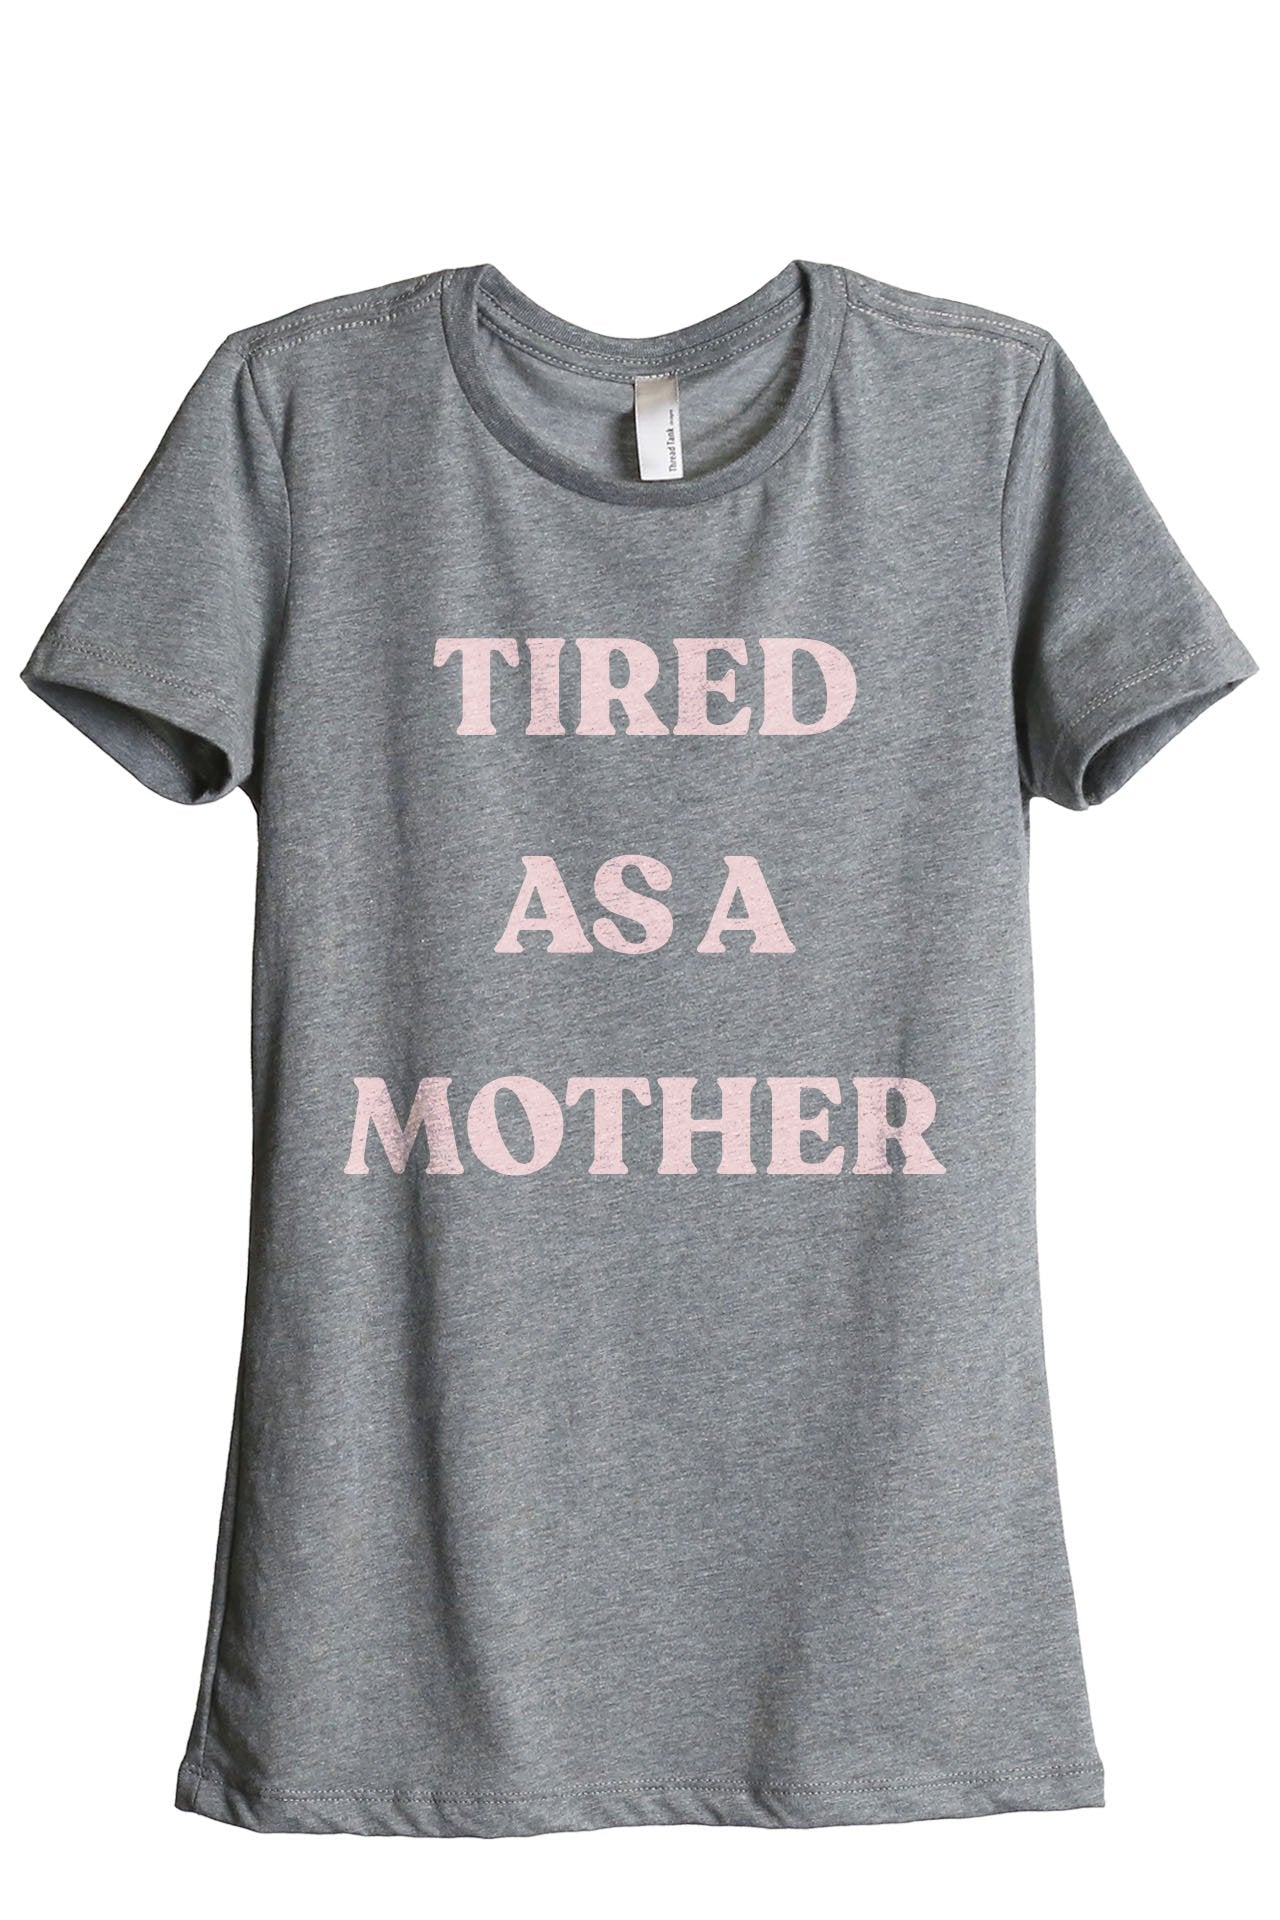 Tired As A Mother Women's Relaxed Crew T-Shirt Tee Heather Grey Pink Exclusive